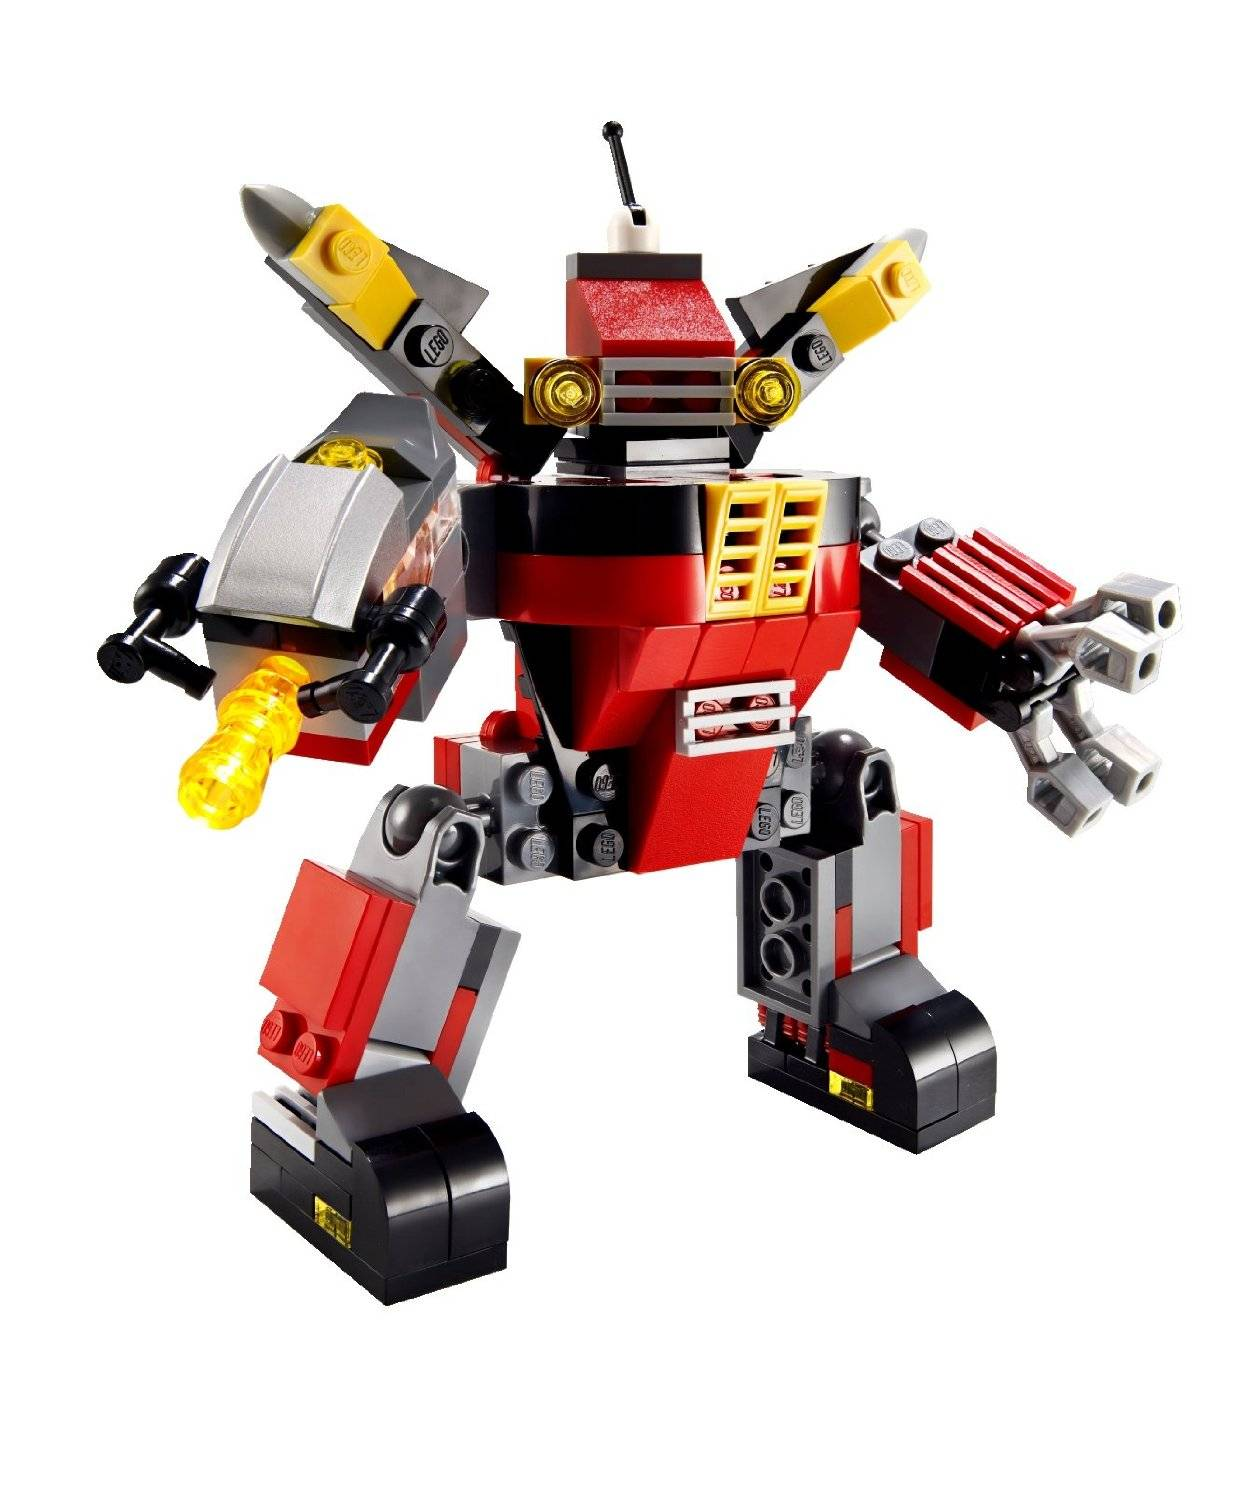 The LEGO Creator Rescue Robot